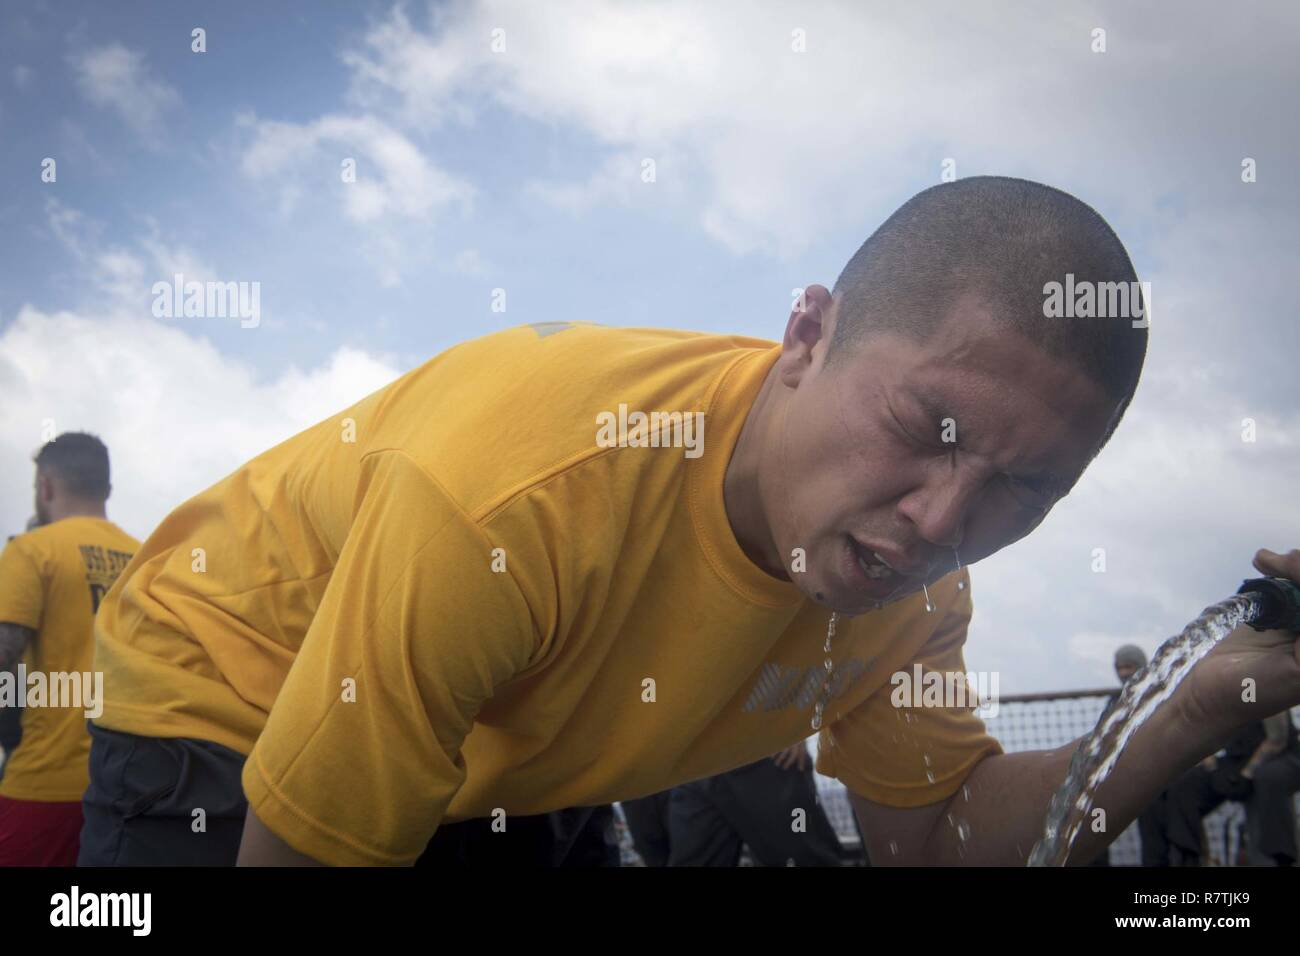 SOUTH CHINA SEA (April 8, 2017)  Culinary Specialist 1st Class Wilson Ebreo, right, decontaminates following exposure to oleoresin capsicum during security reactionary forces training aboard the Arleigh Burke-class guided-missile destroyer USS Stethem (DDG 63). Stethem is on patrol in the South China Sea supporting security and stability in the Indo-Asia-Pacific region. Stock Photo